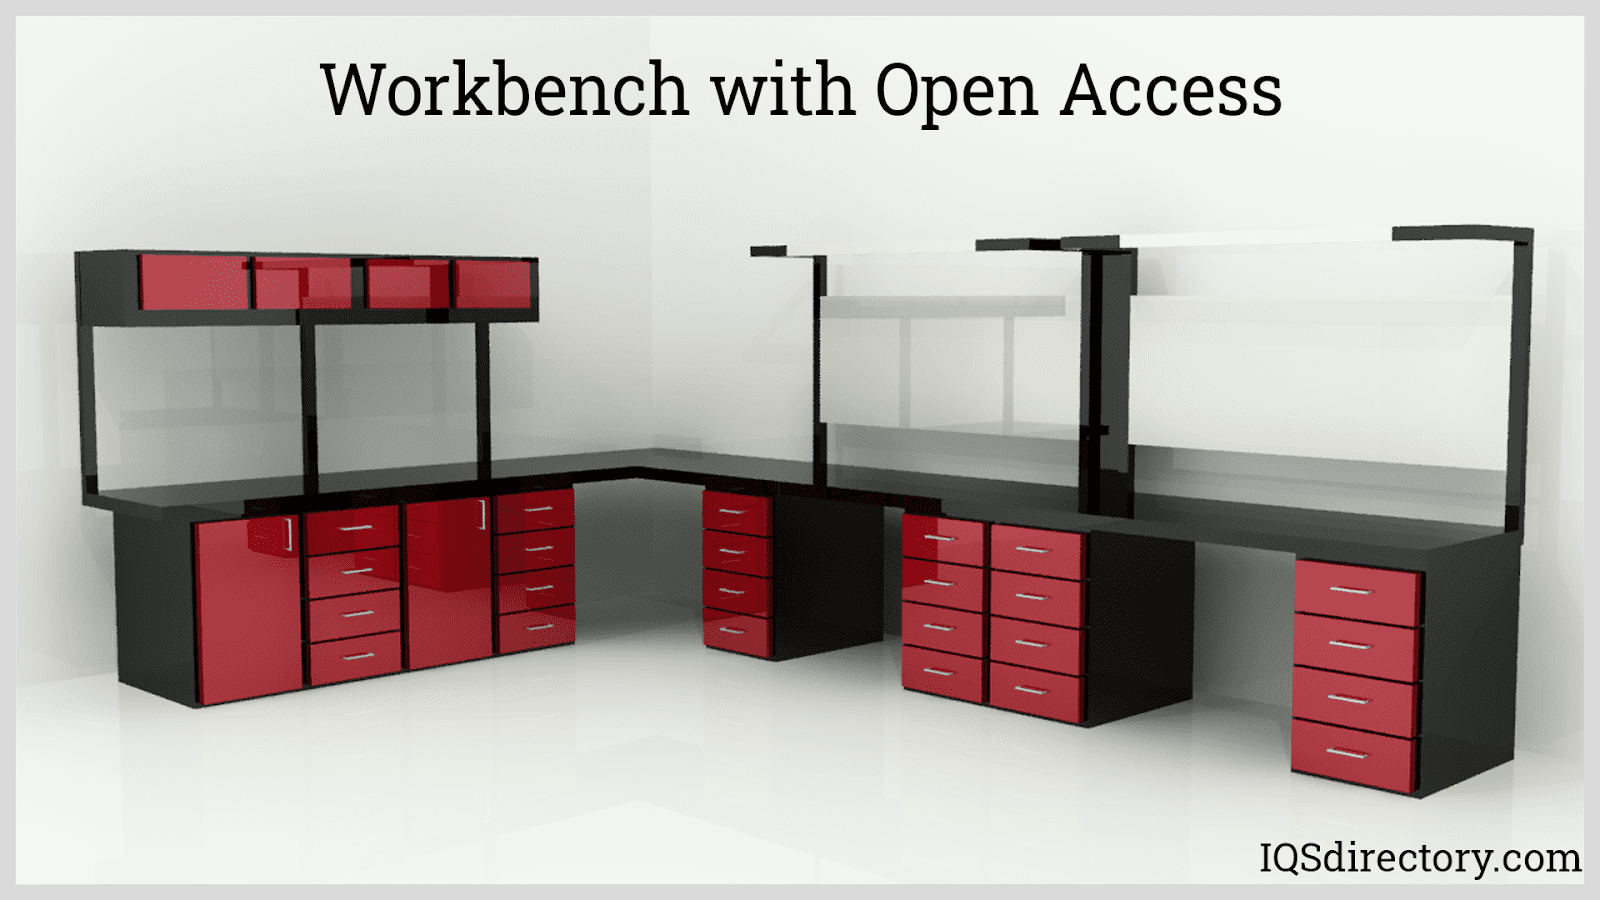 Workbench with Open Access